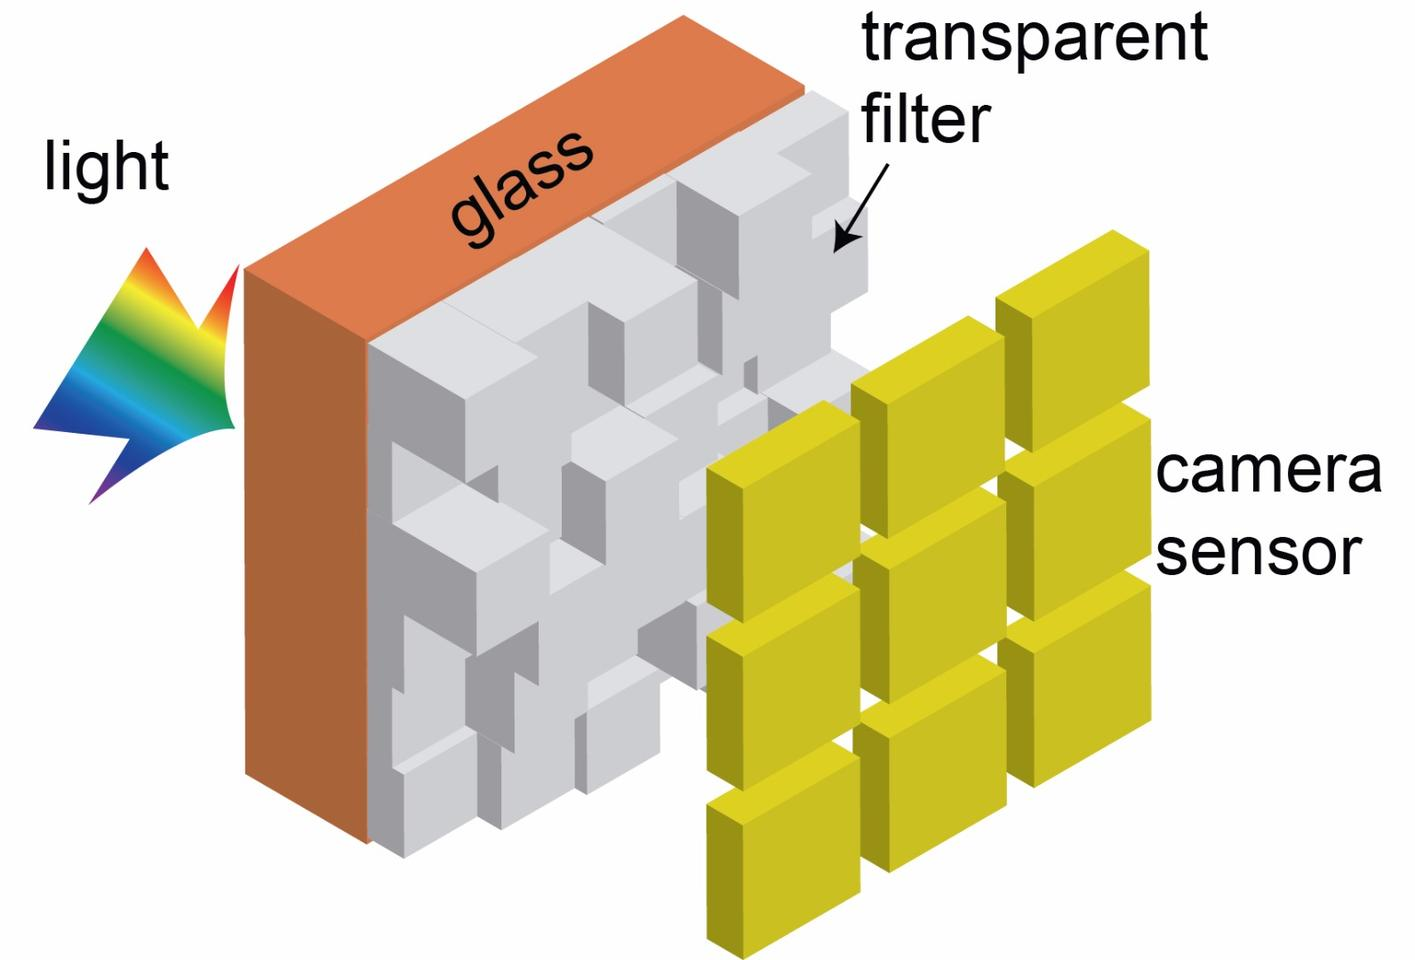 In this illustration, all of the light passes through the new camera color filter before it reaches the digital camera sensor, allowing photos to be brighter and sharper